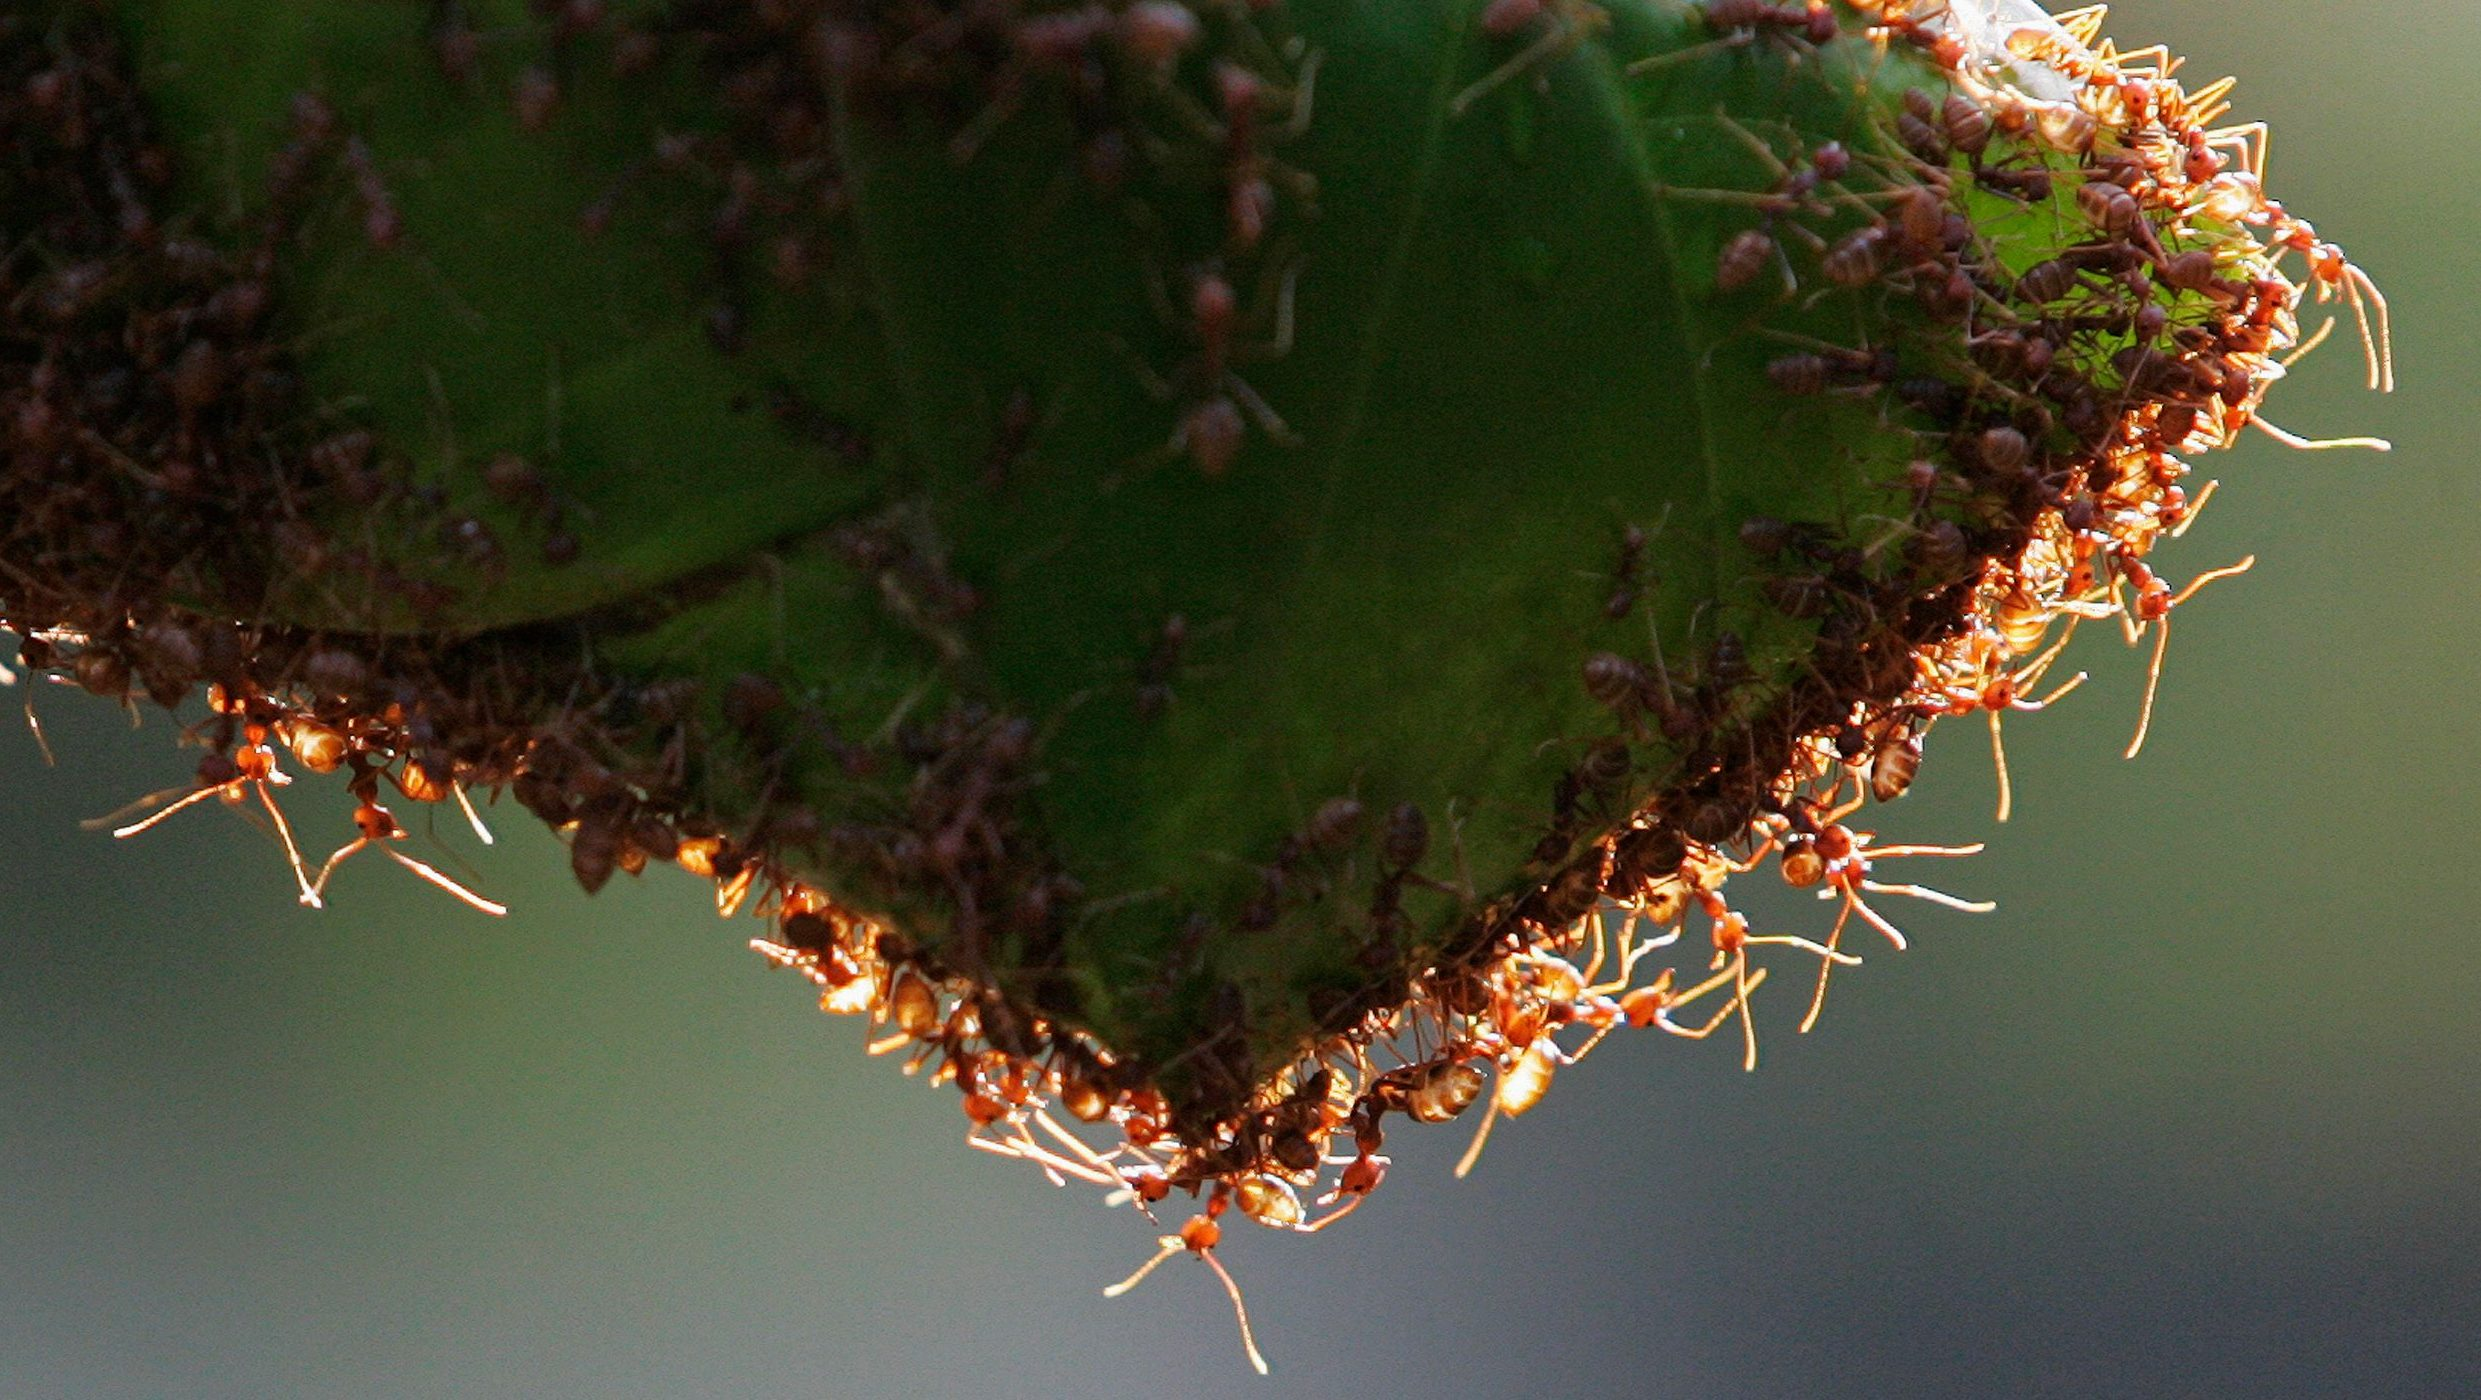 A colony of weaver ants build their nest from leaves in Kuala Lumpur January 31, 2009. Weaver ants get their name from their habit of binding fresh leaves with silk to form their nests. Their lifecycle spans a period of 8 to 10 weeks.